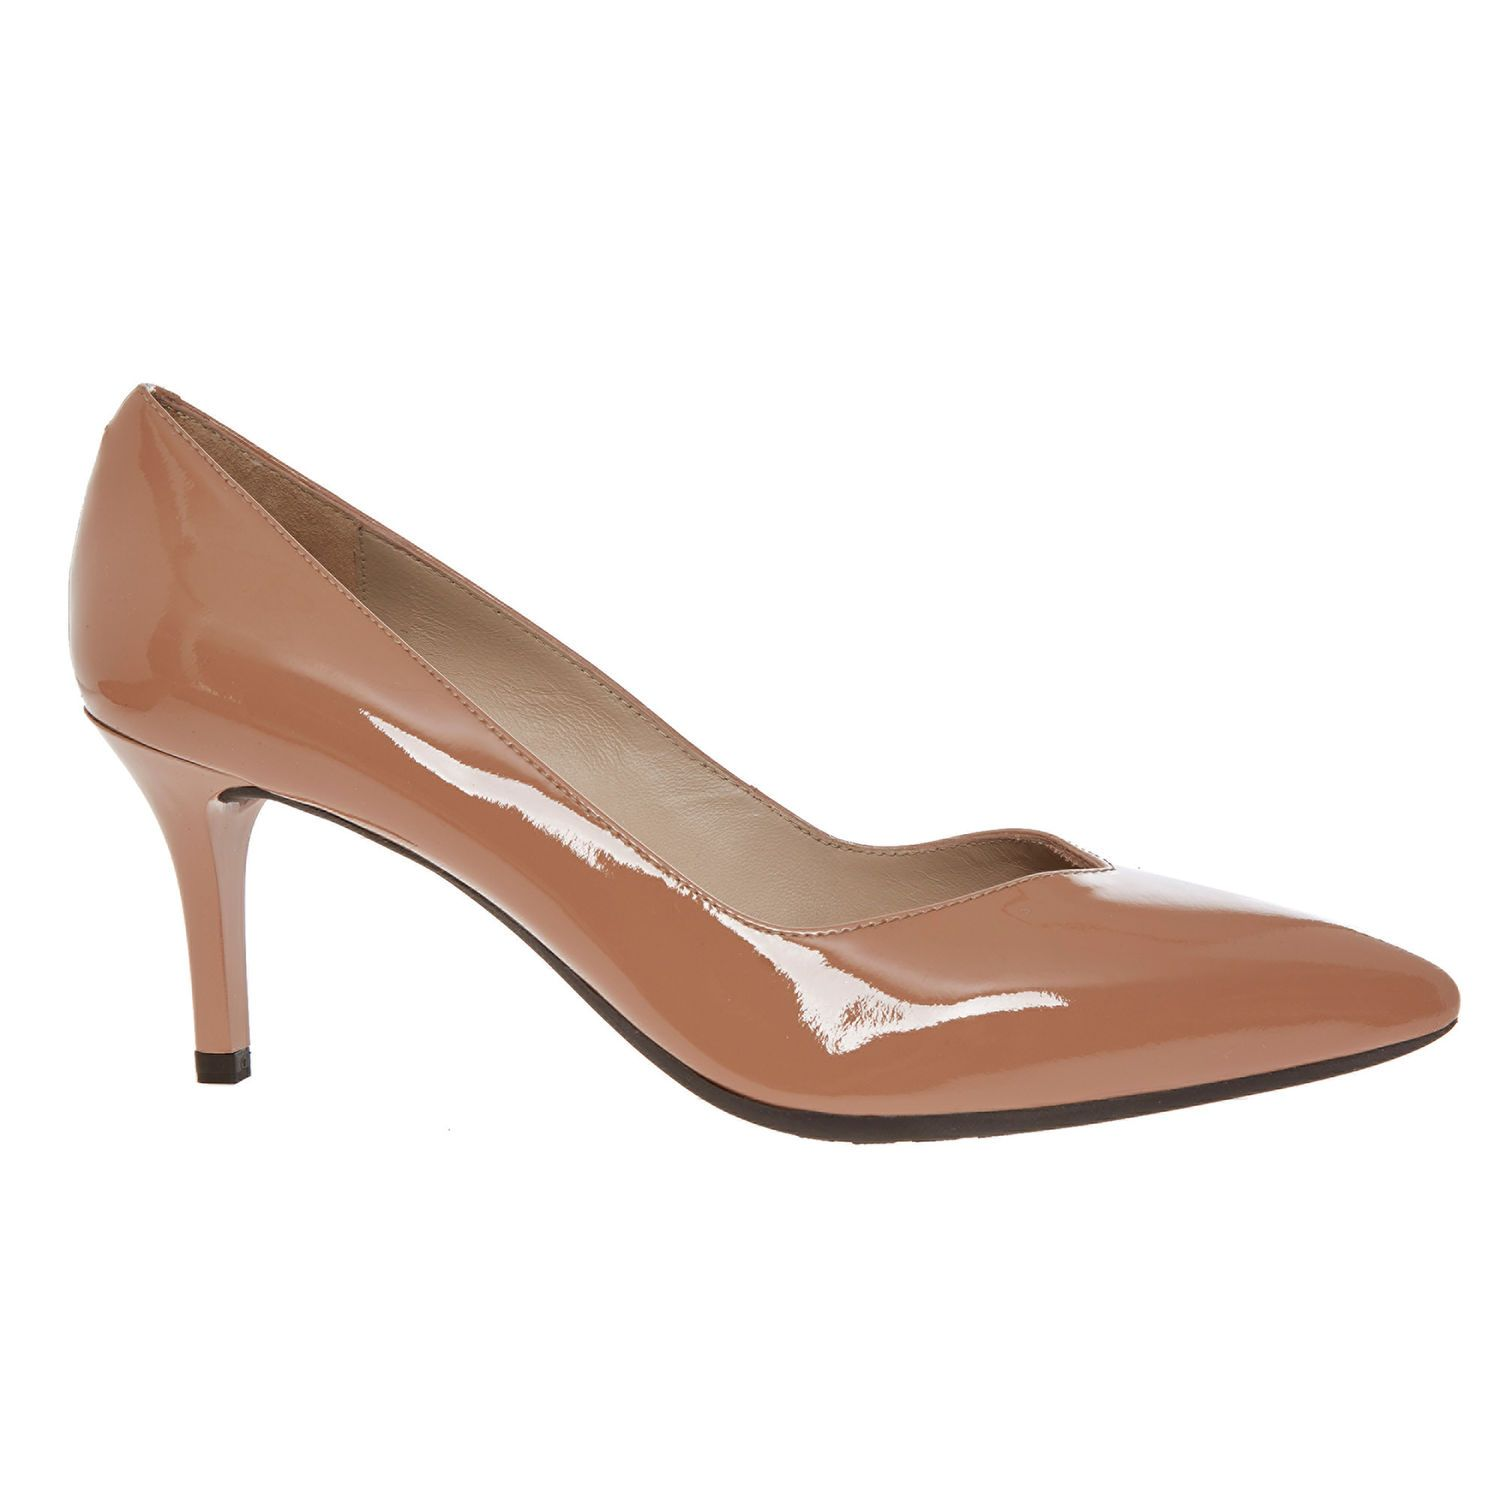 2469645b92ae9 Dusty Pink Patent Court Shoes - Heels - Shoes - Women - TK Maxx ...